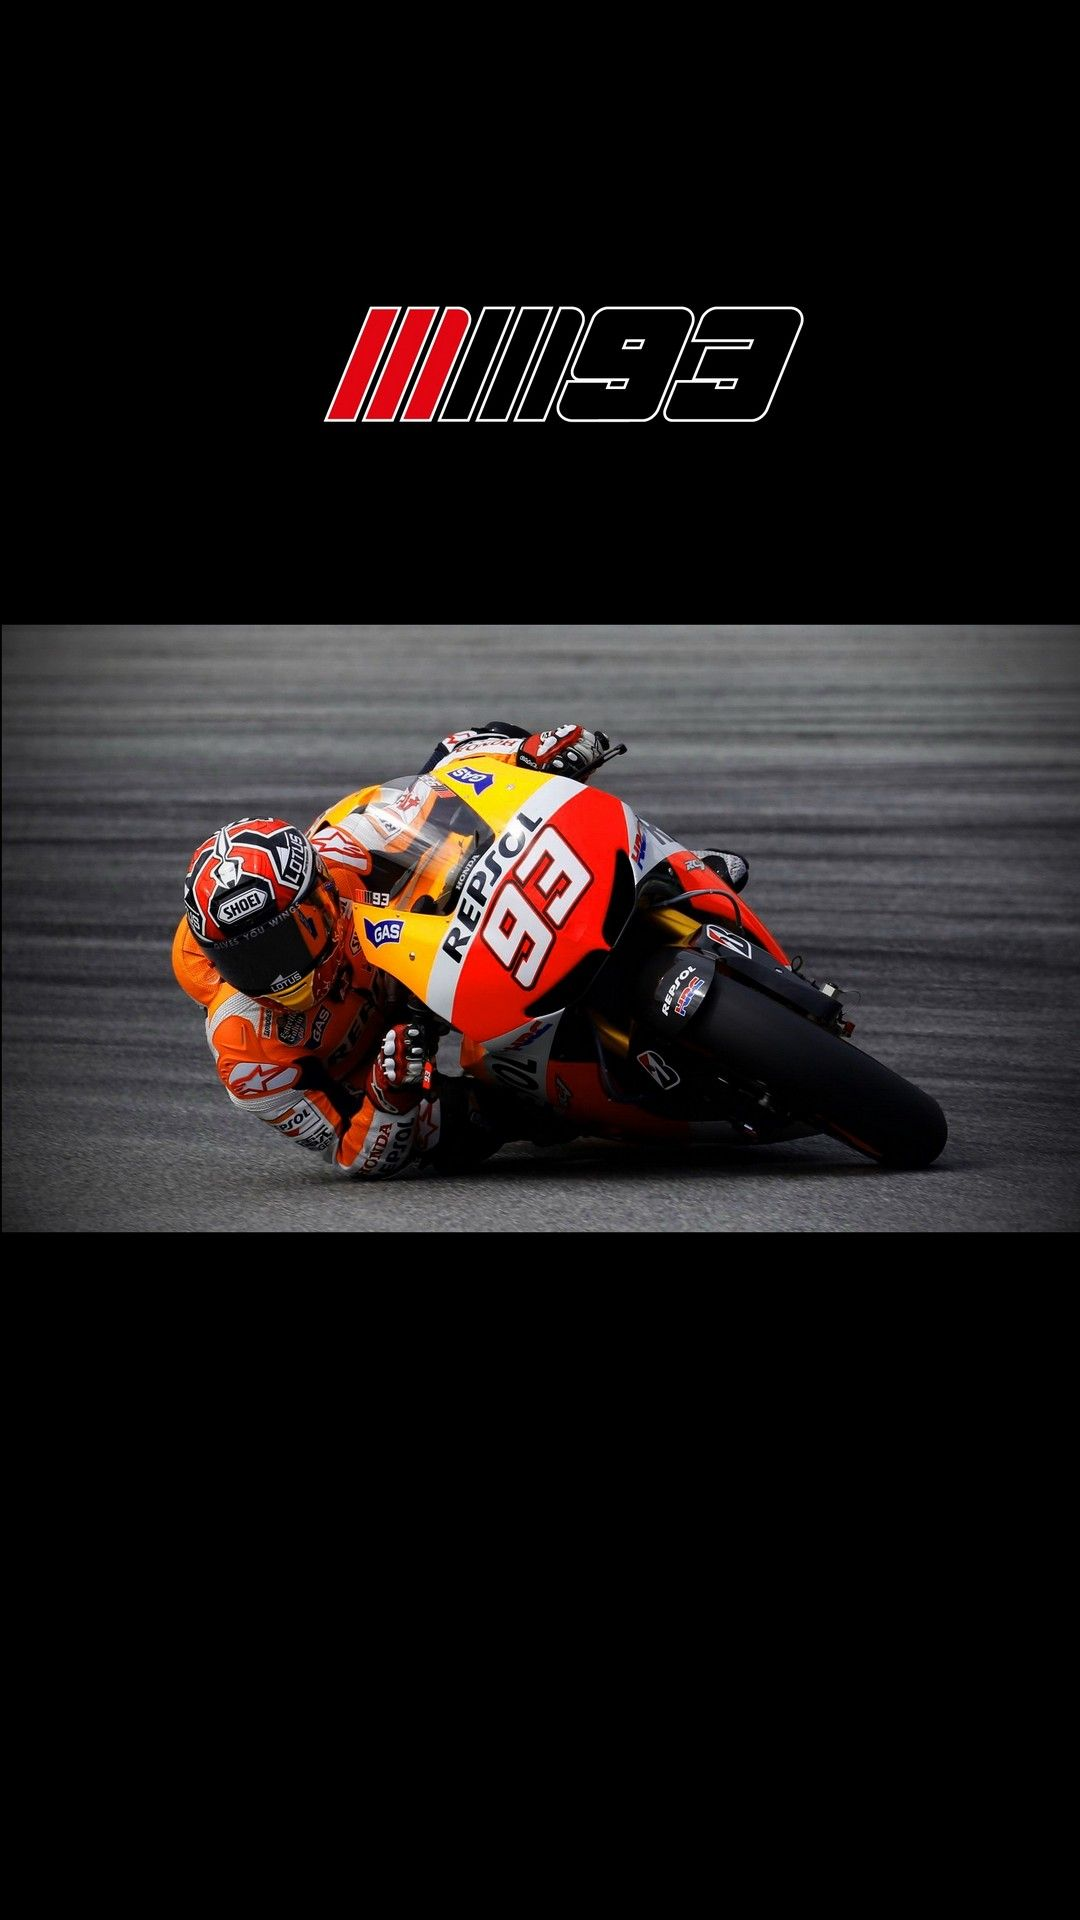 Marc marquez iphone wallpaper pictures 2018 iphone wallpapers marc marquez iphone wallpaper pictures 2018 iphone wallpapers voltagebd Images